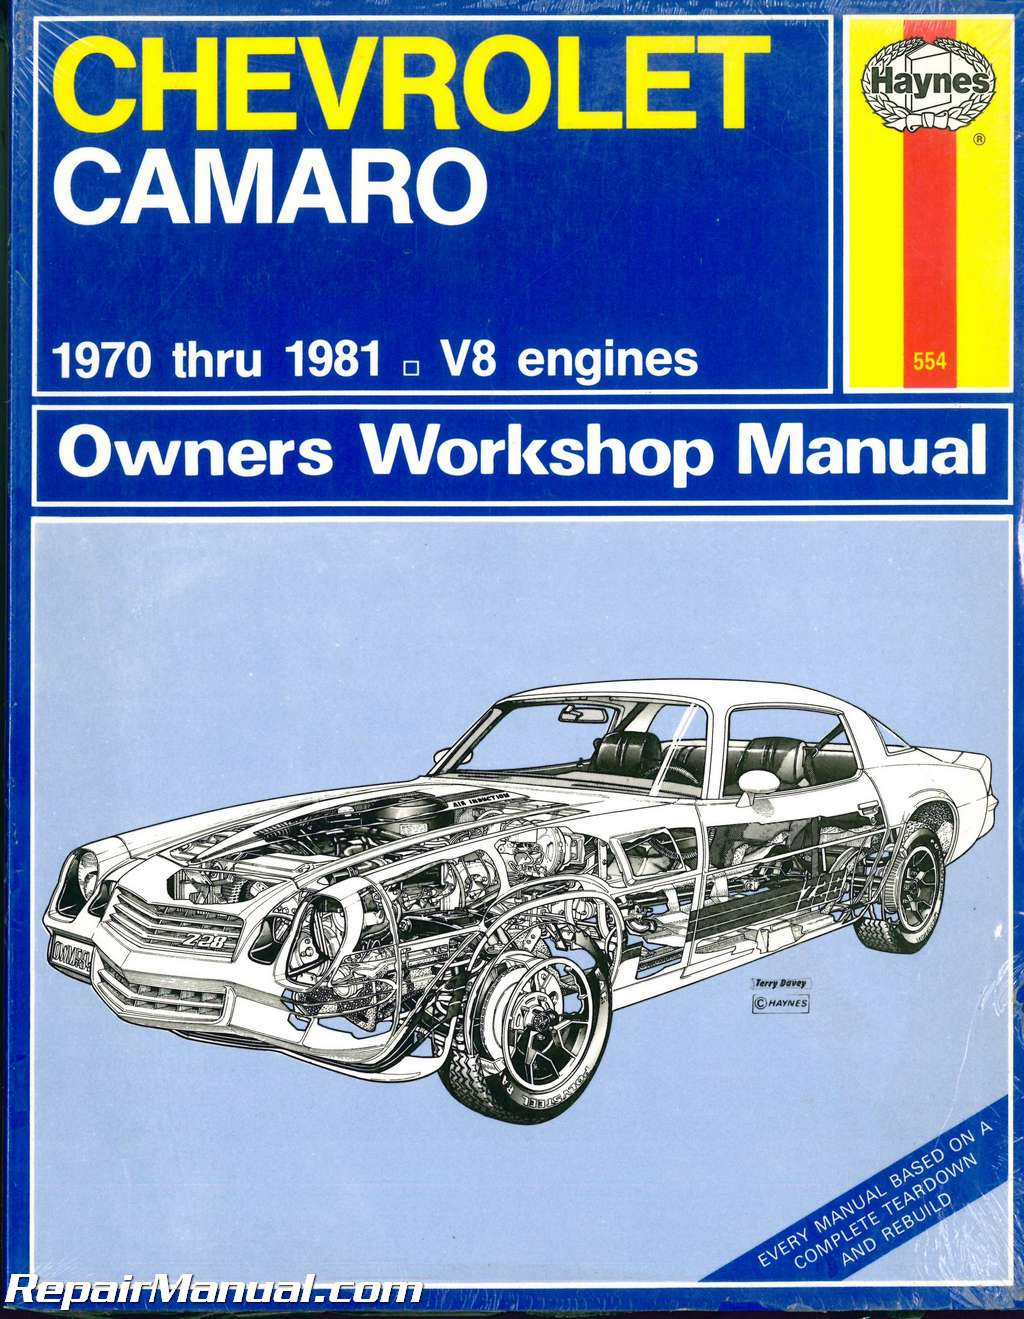 Haynes Owners Workshop Manual Chevrolet Camaro All Models 1970 1981 Wiring Diagram